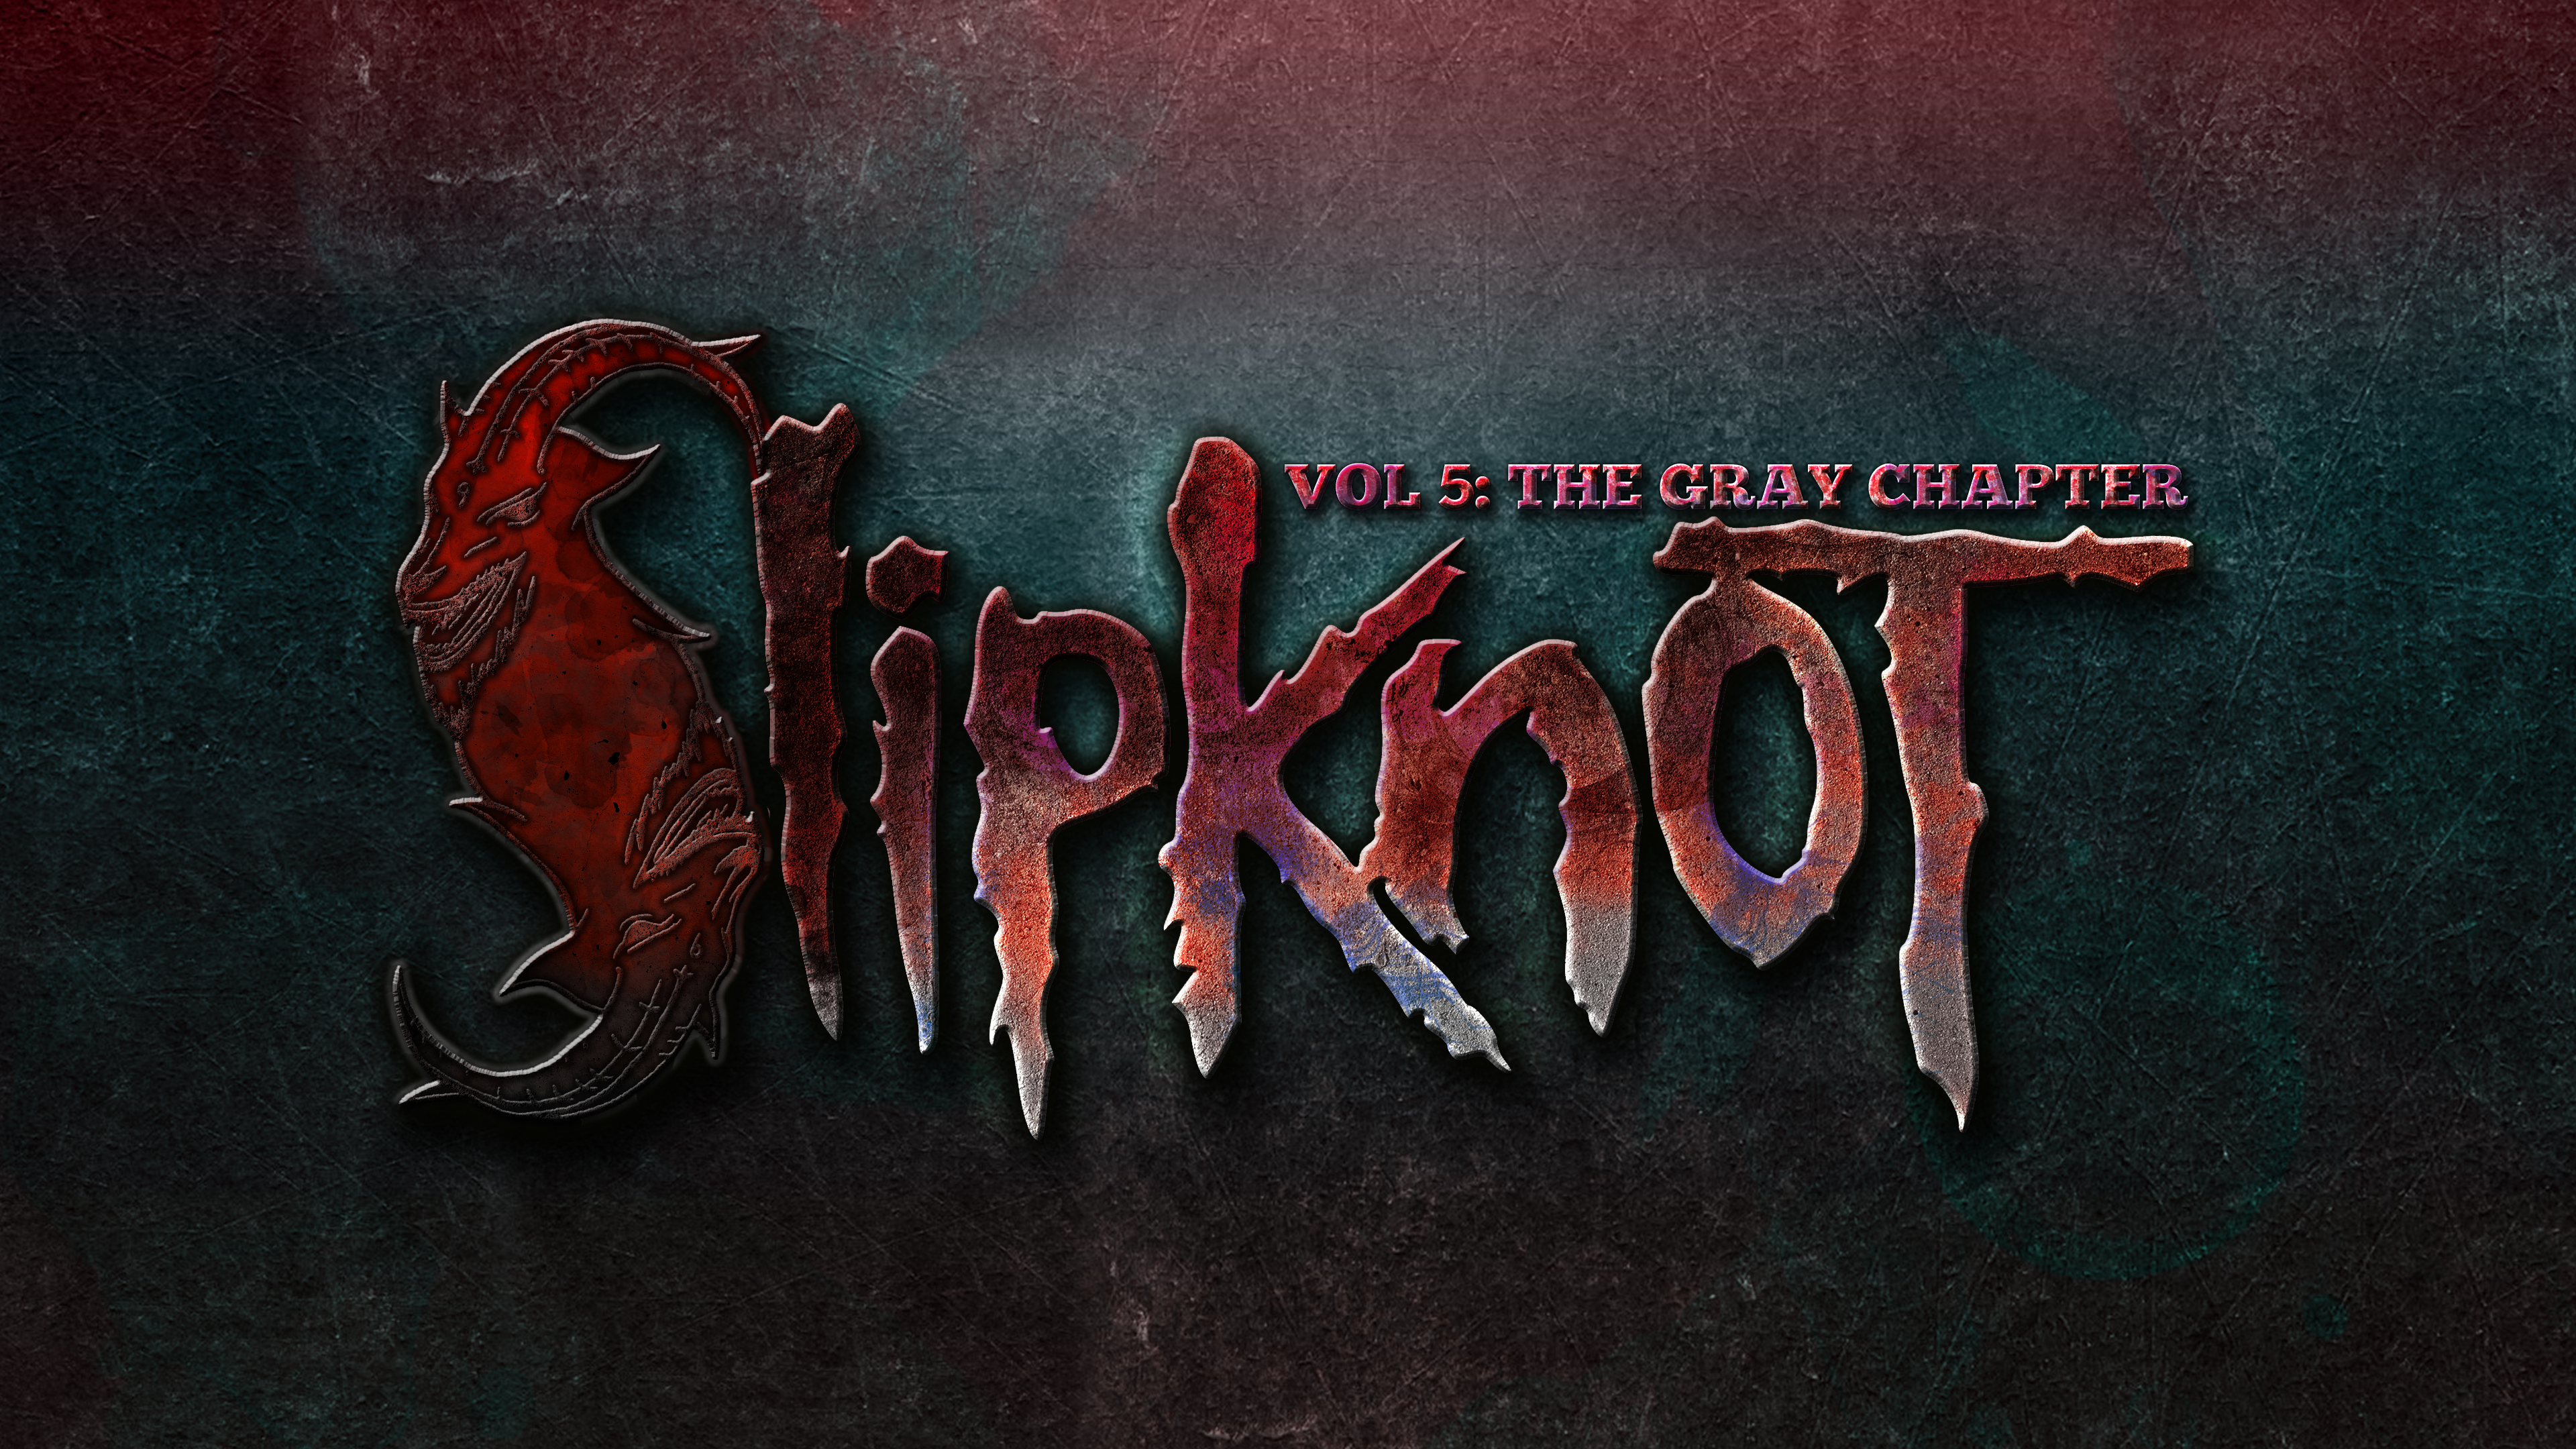 Slipknot 4k Ultra HD Wallpaper And Background Image